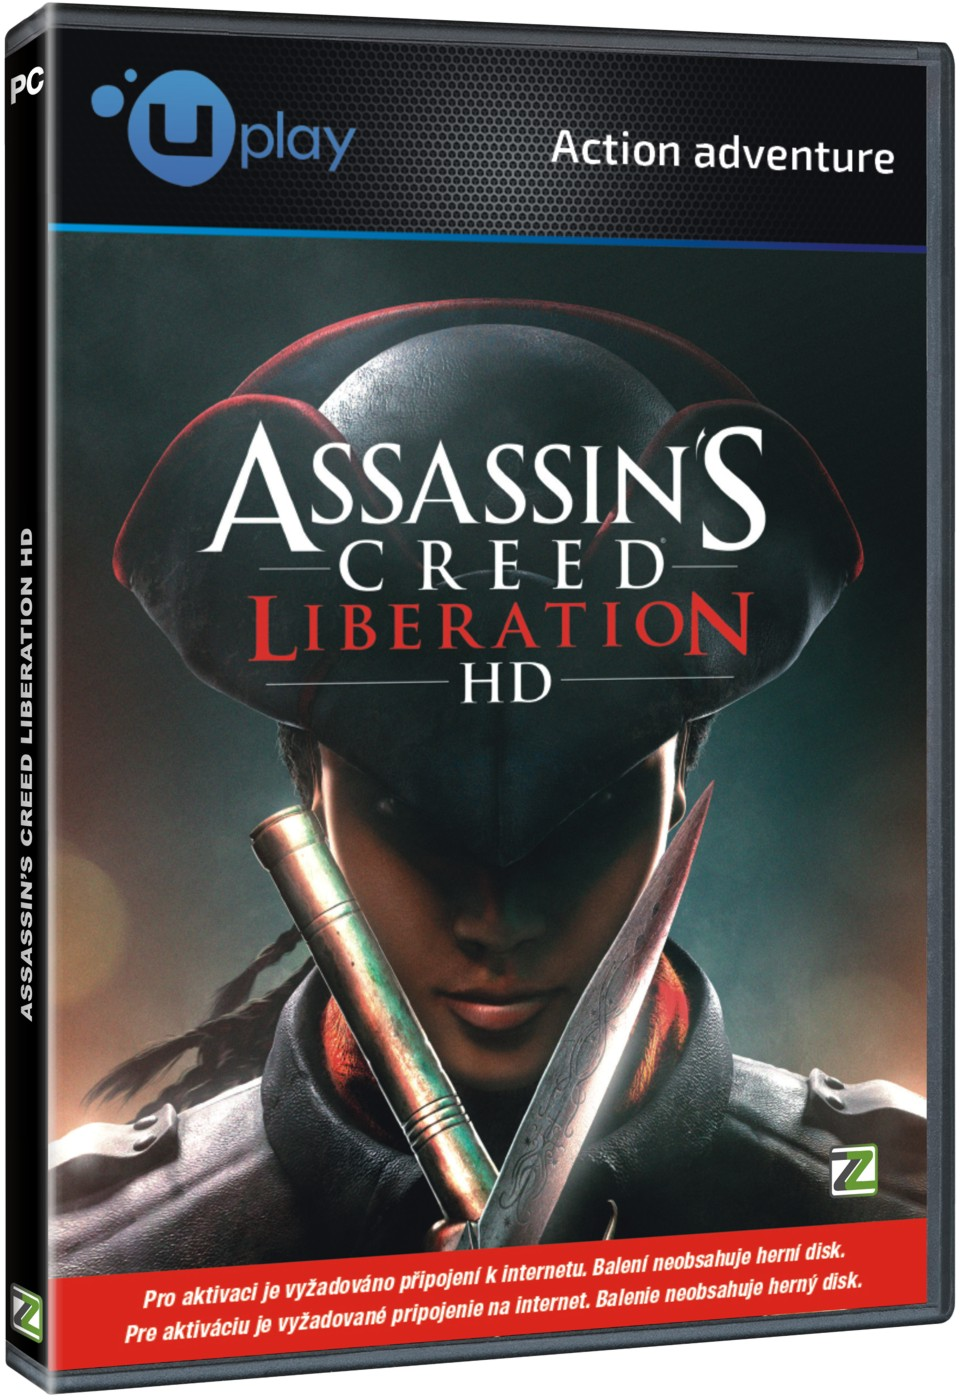 ASSASSINS CREED LIBERATION HD - PC (Code Uplay)